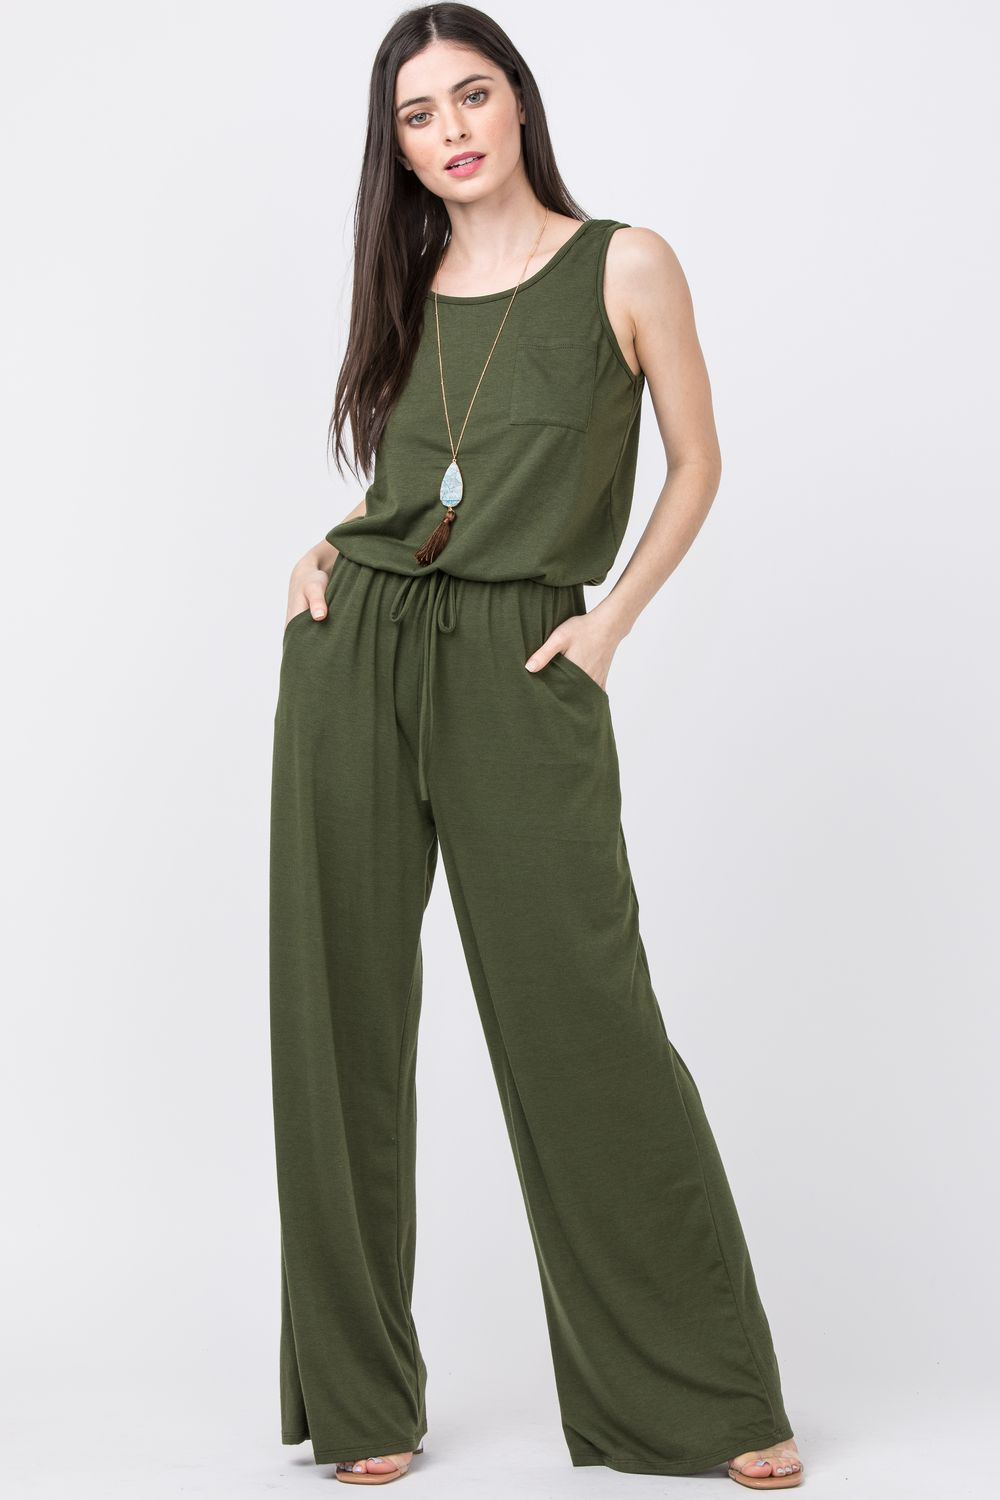 Olive Sleeveless Drawstring Jumpsuit with Front Pocket